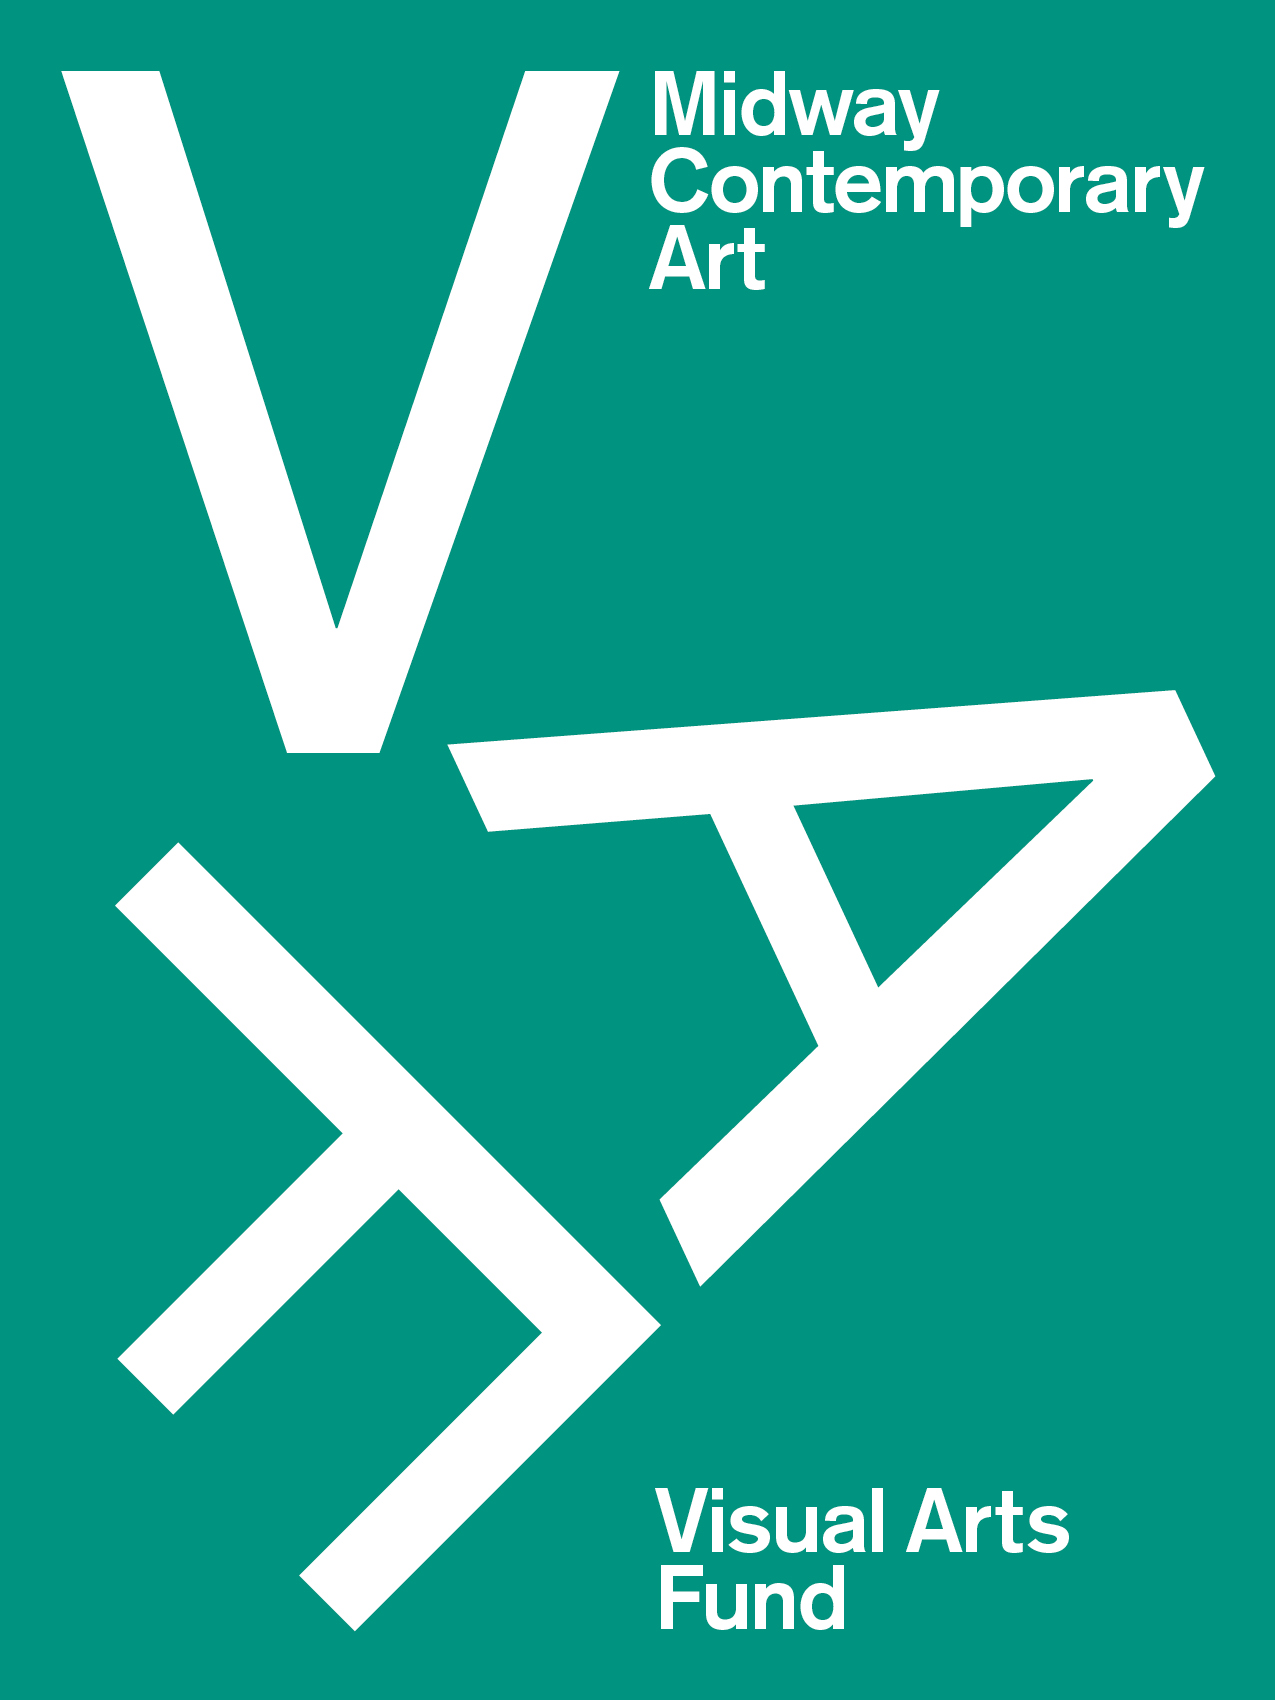 Visual Arts Fund 2019 - Midway Contemporary Art